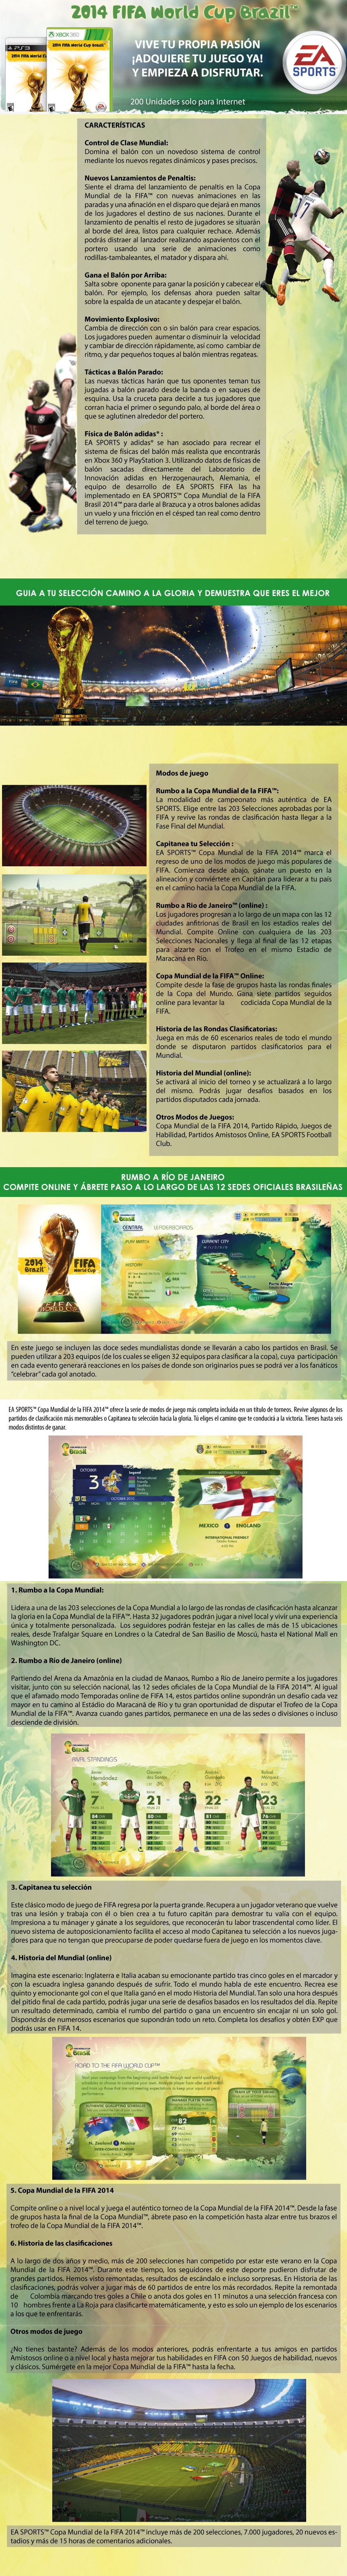 fIFA world Cup Road to Brasil 2014